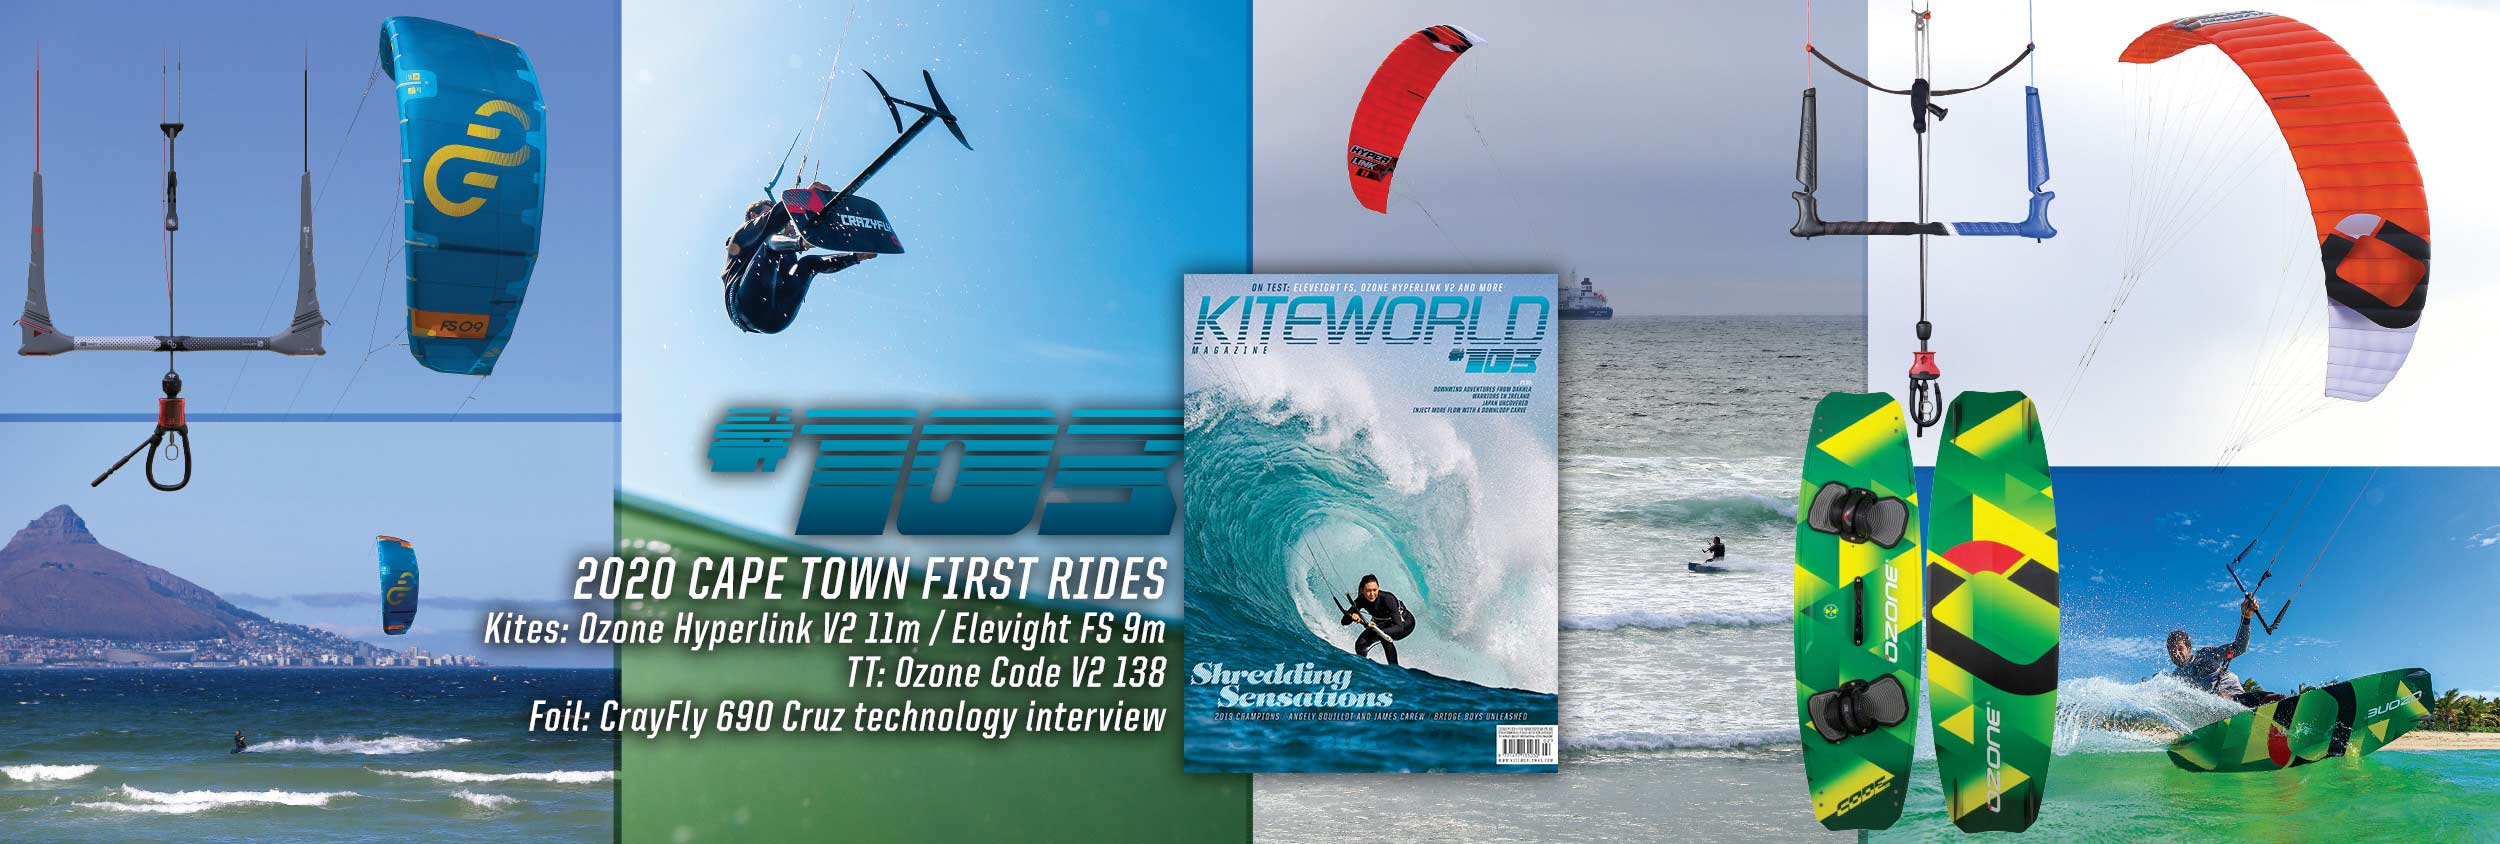 Kitesurfing equipment tests